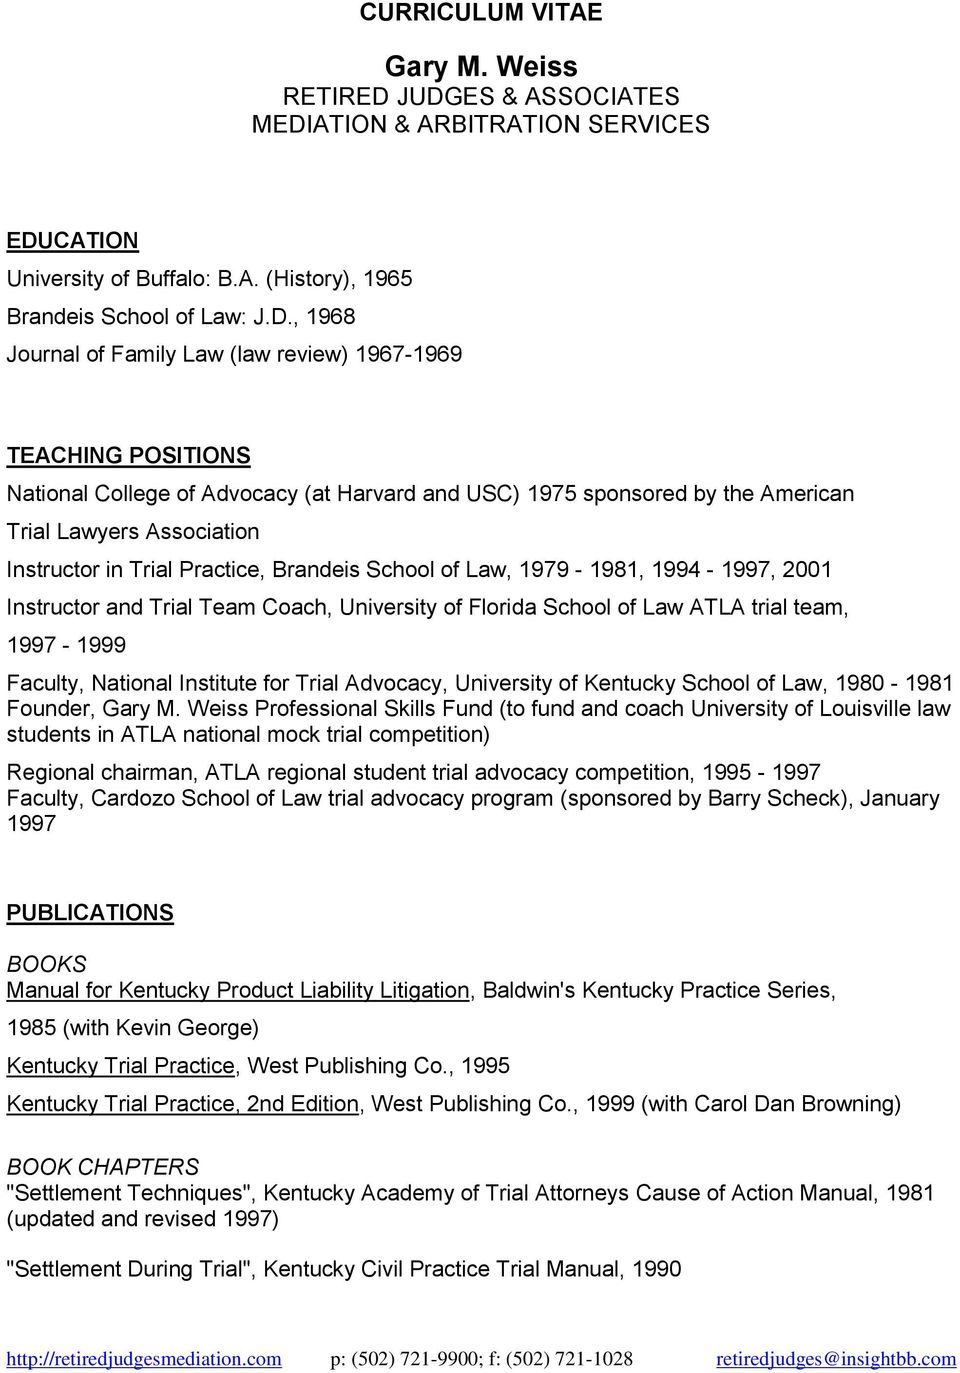 School of Law ATLA trial team, 1997-1999 Faculty, National Institute for Trial Advocacy, University of Kentucky School of Law, 1980-1981 Founder, Professional Skills Fund (to fund and coach